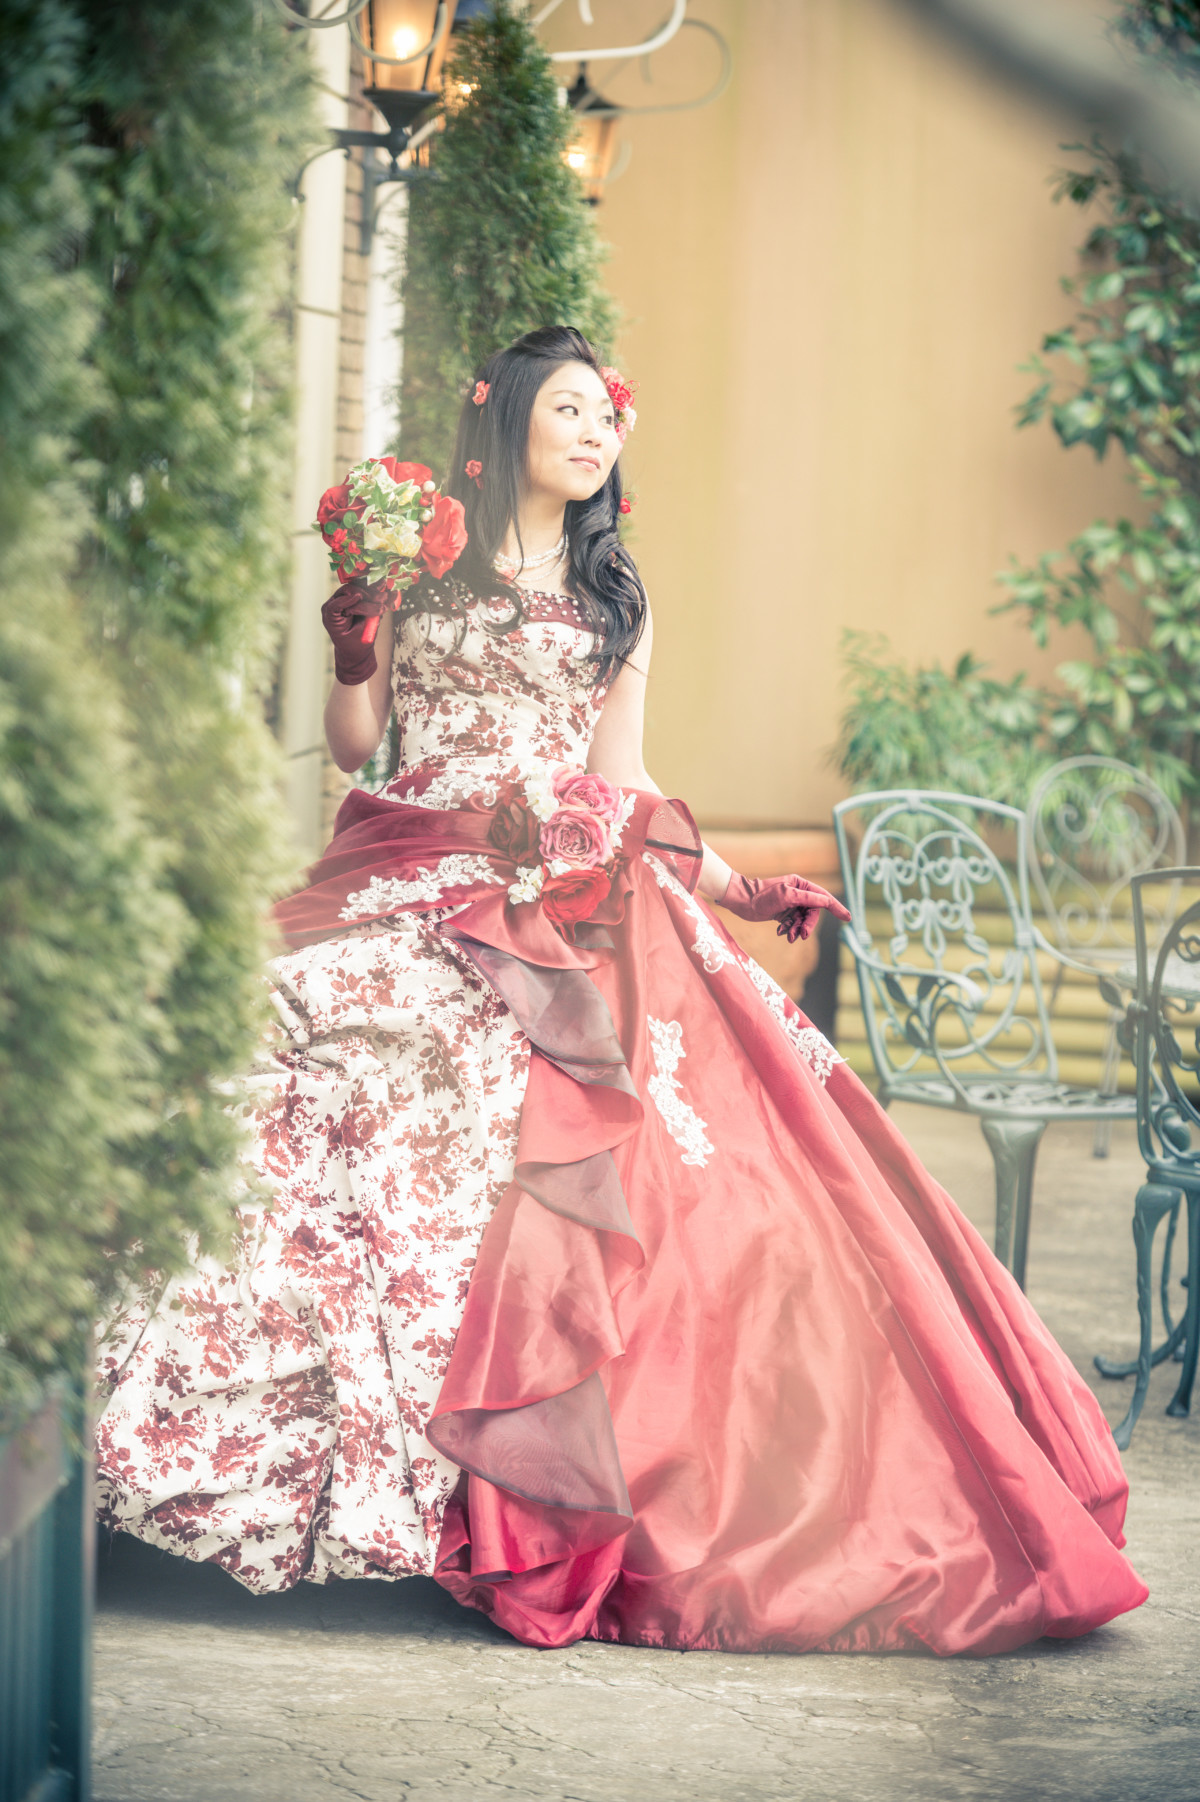 Regal red rose wedding dress — Photo by PIC WEDDING PHOTO(三村正人)